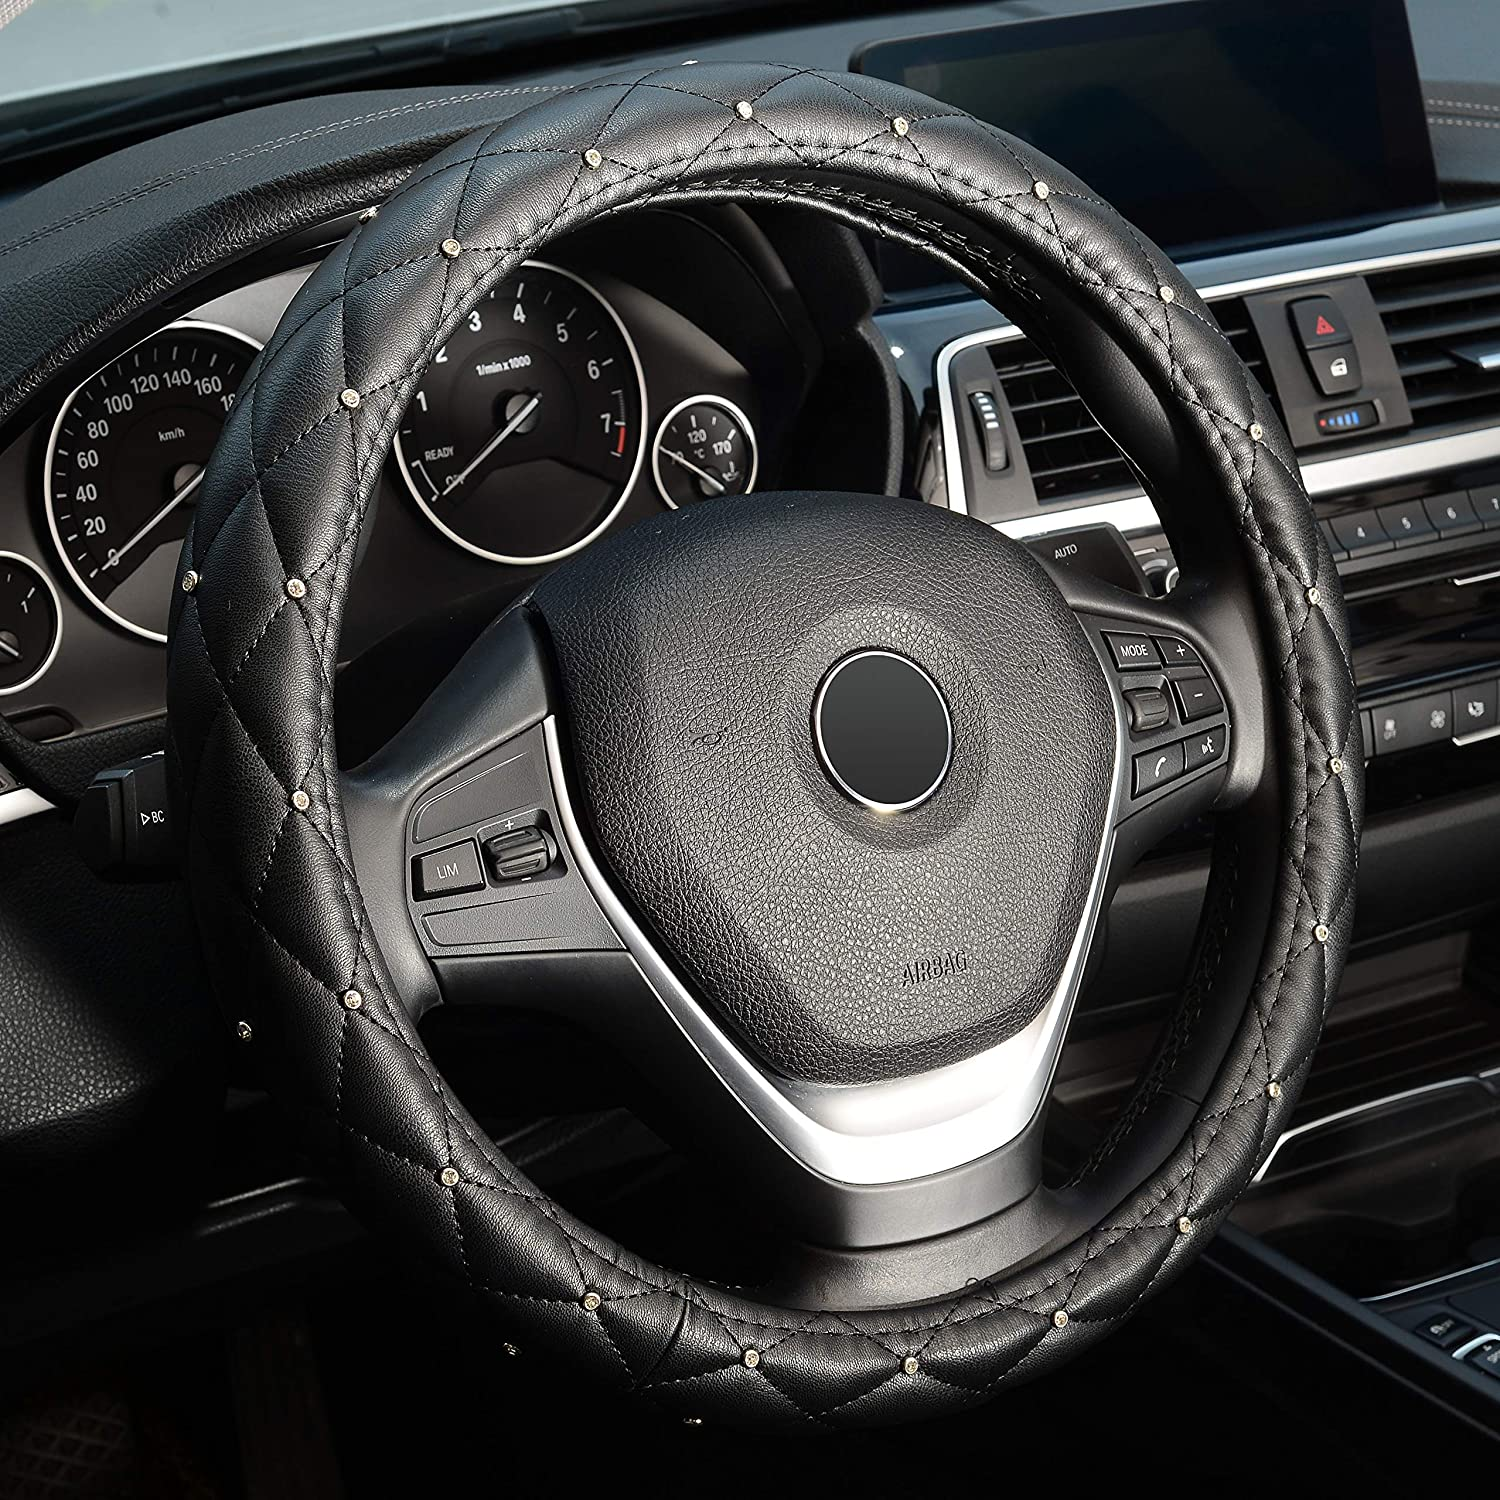 LABBYWAY Universal Fit 15 Inch Steering Wheel Cover, with Bling Bling Crystal Rhinestones, Diamond Leather Car Wheel Protector for Women Girls,Black